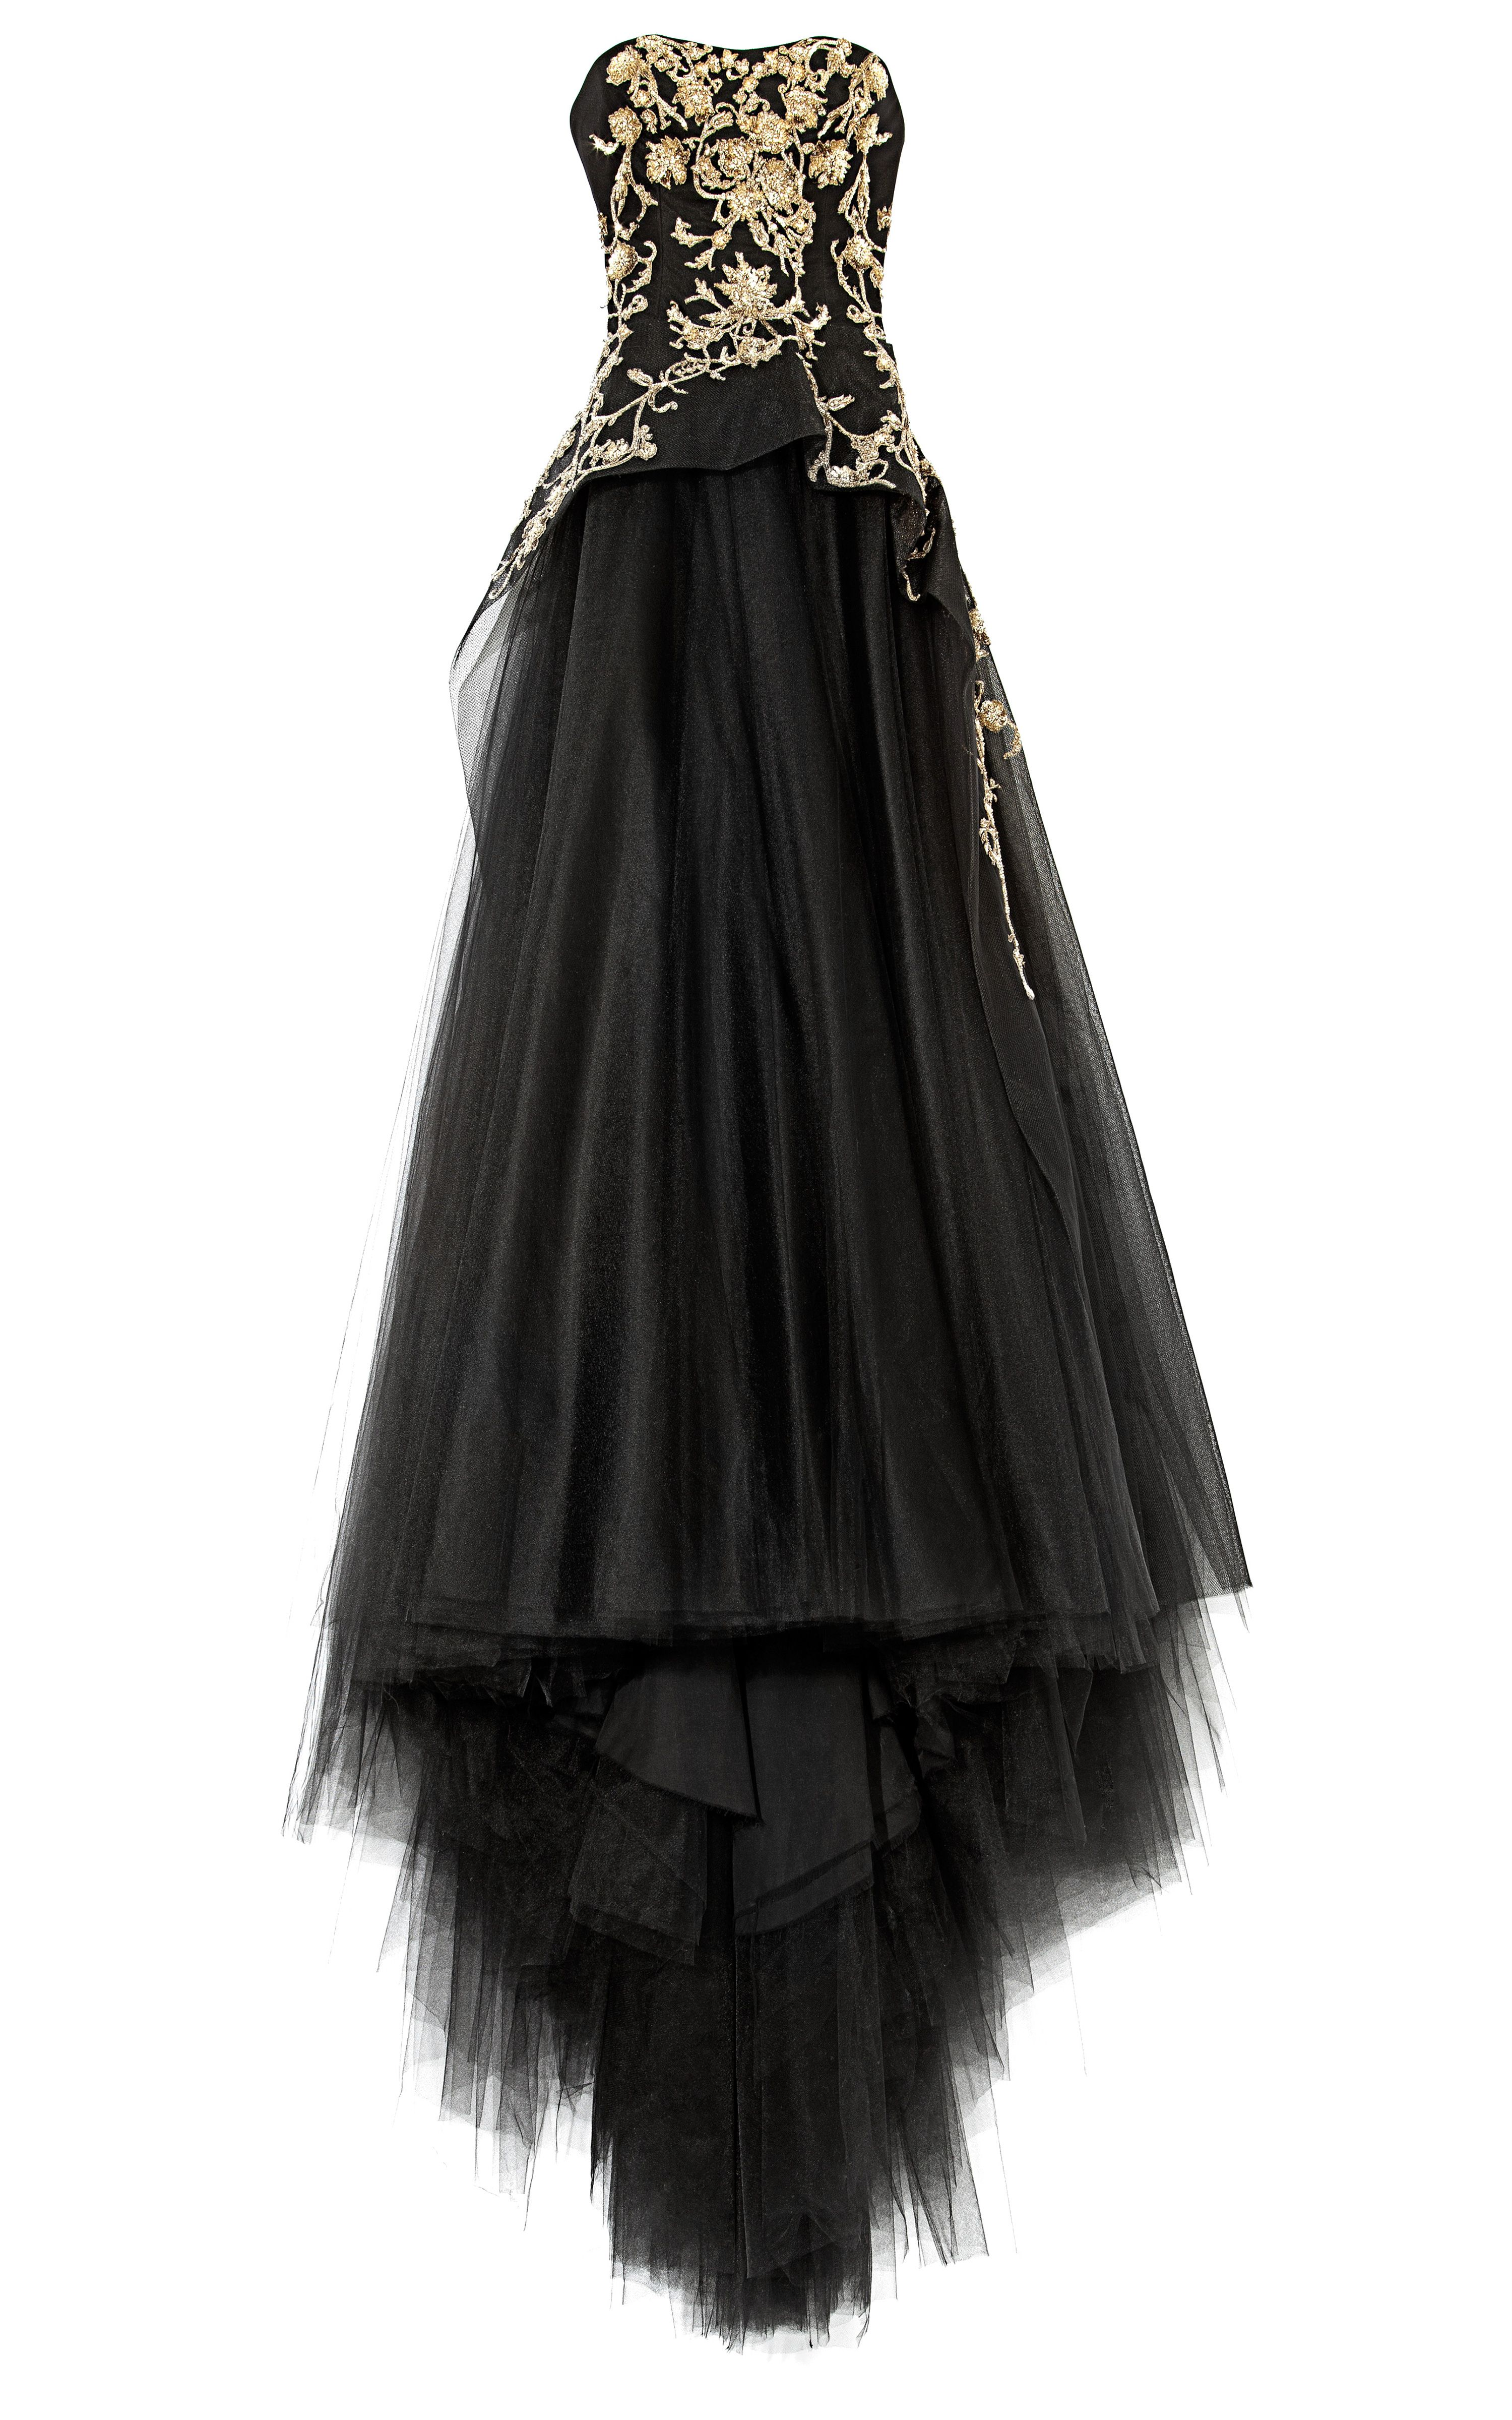 Tulle ball gown with structured bodice by marchesa for preorder on